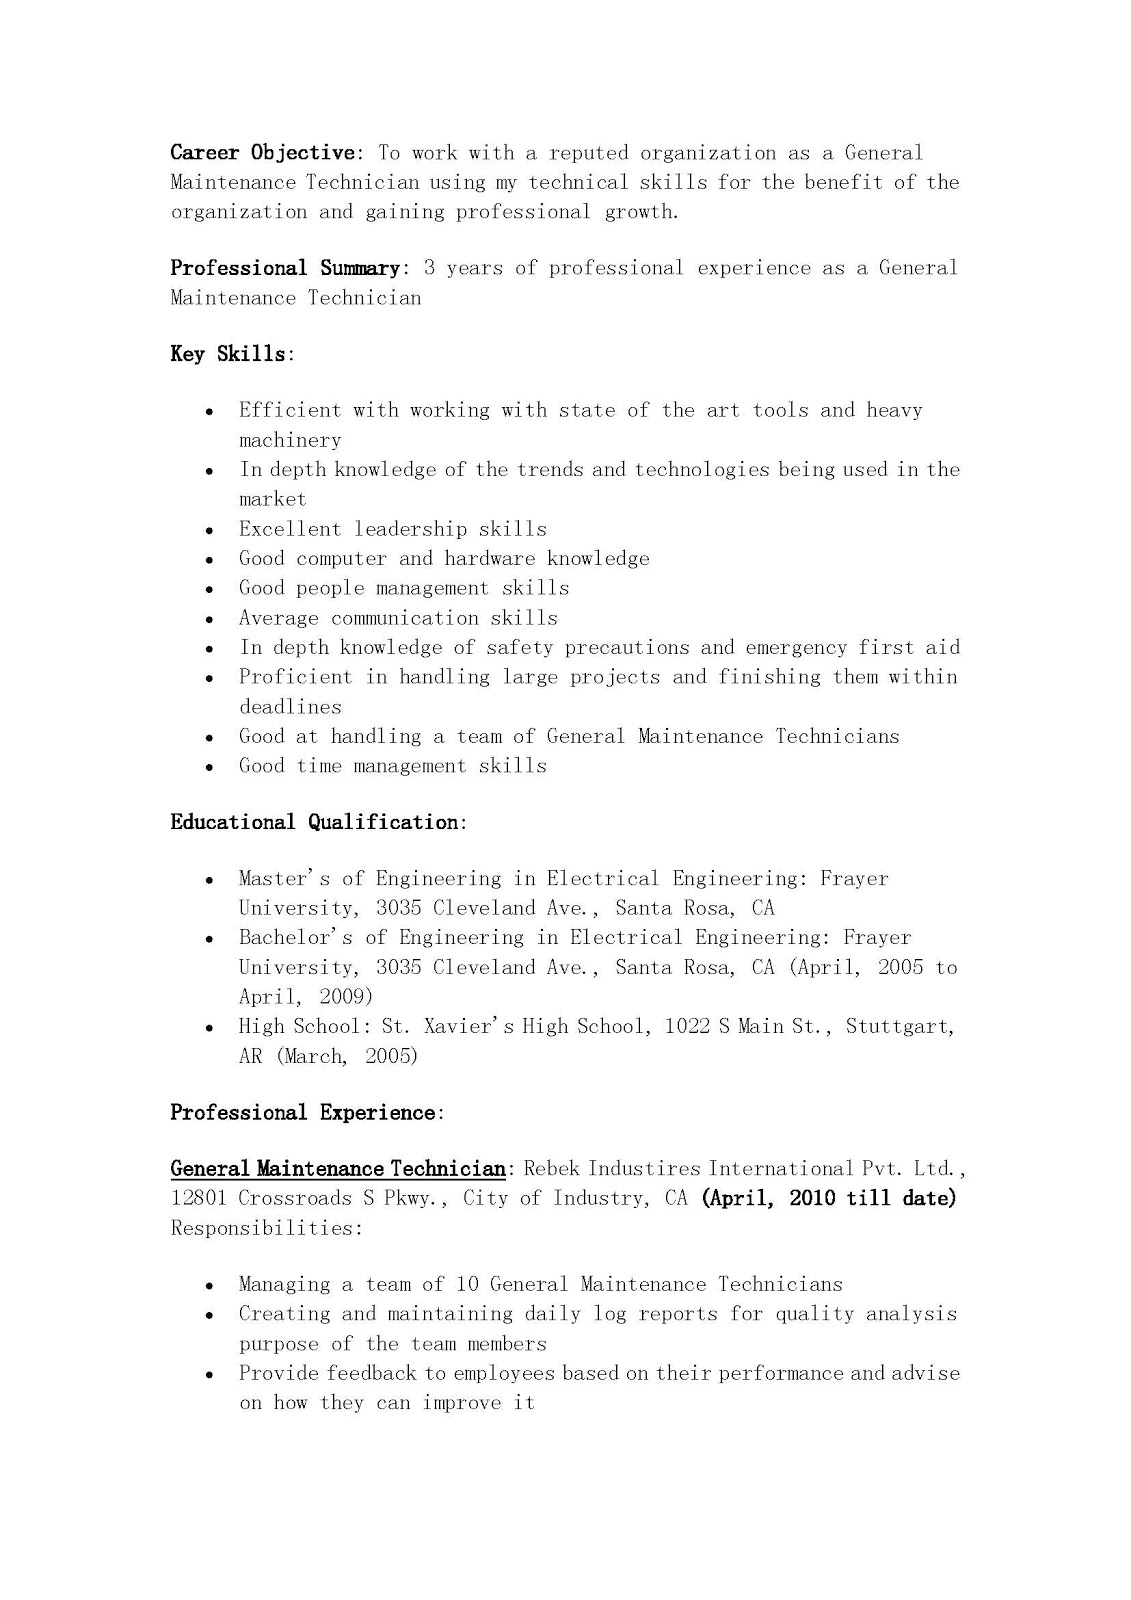 Monitoring Technician Resume Examples